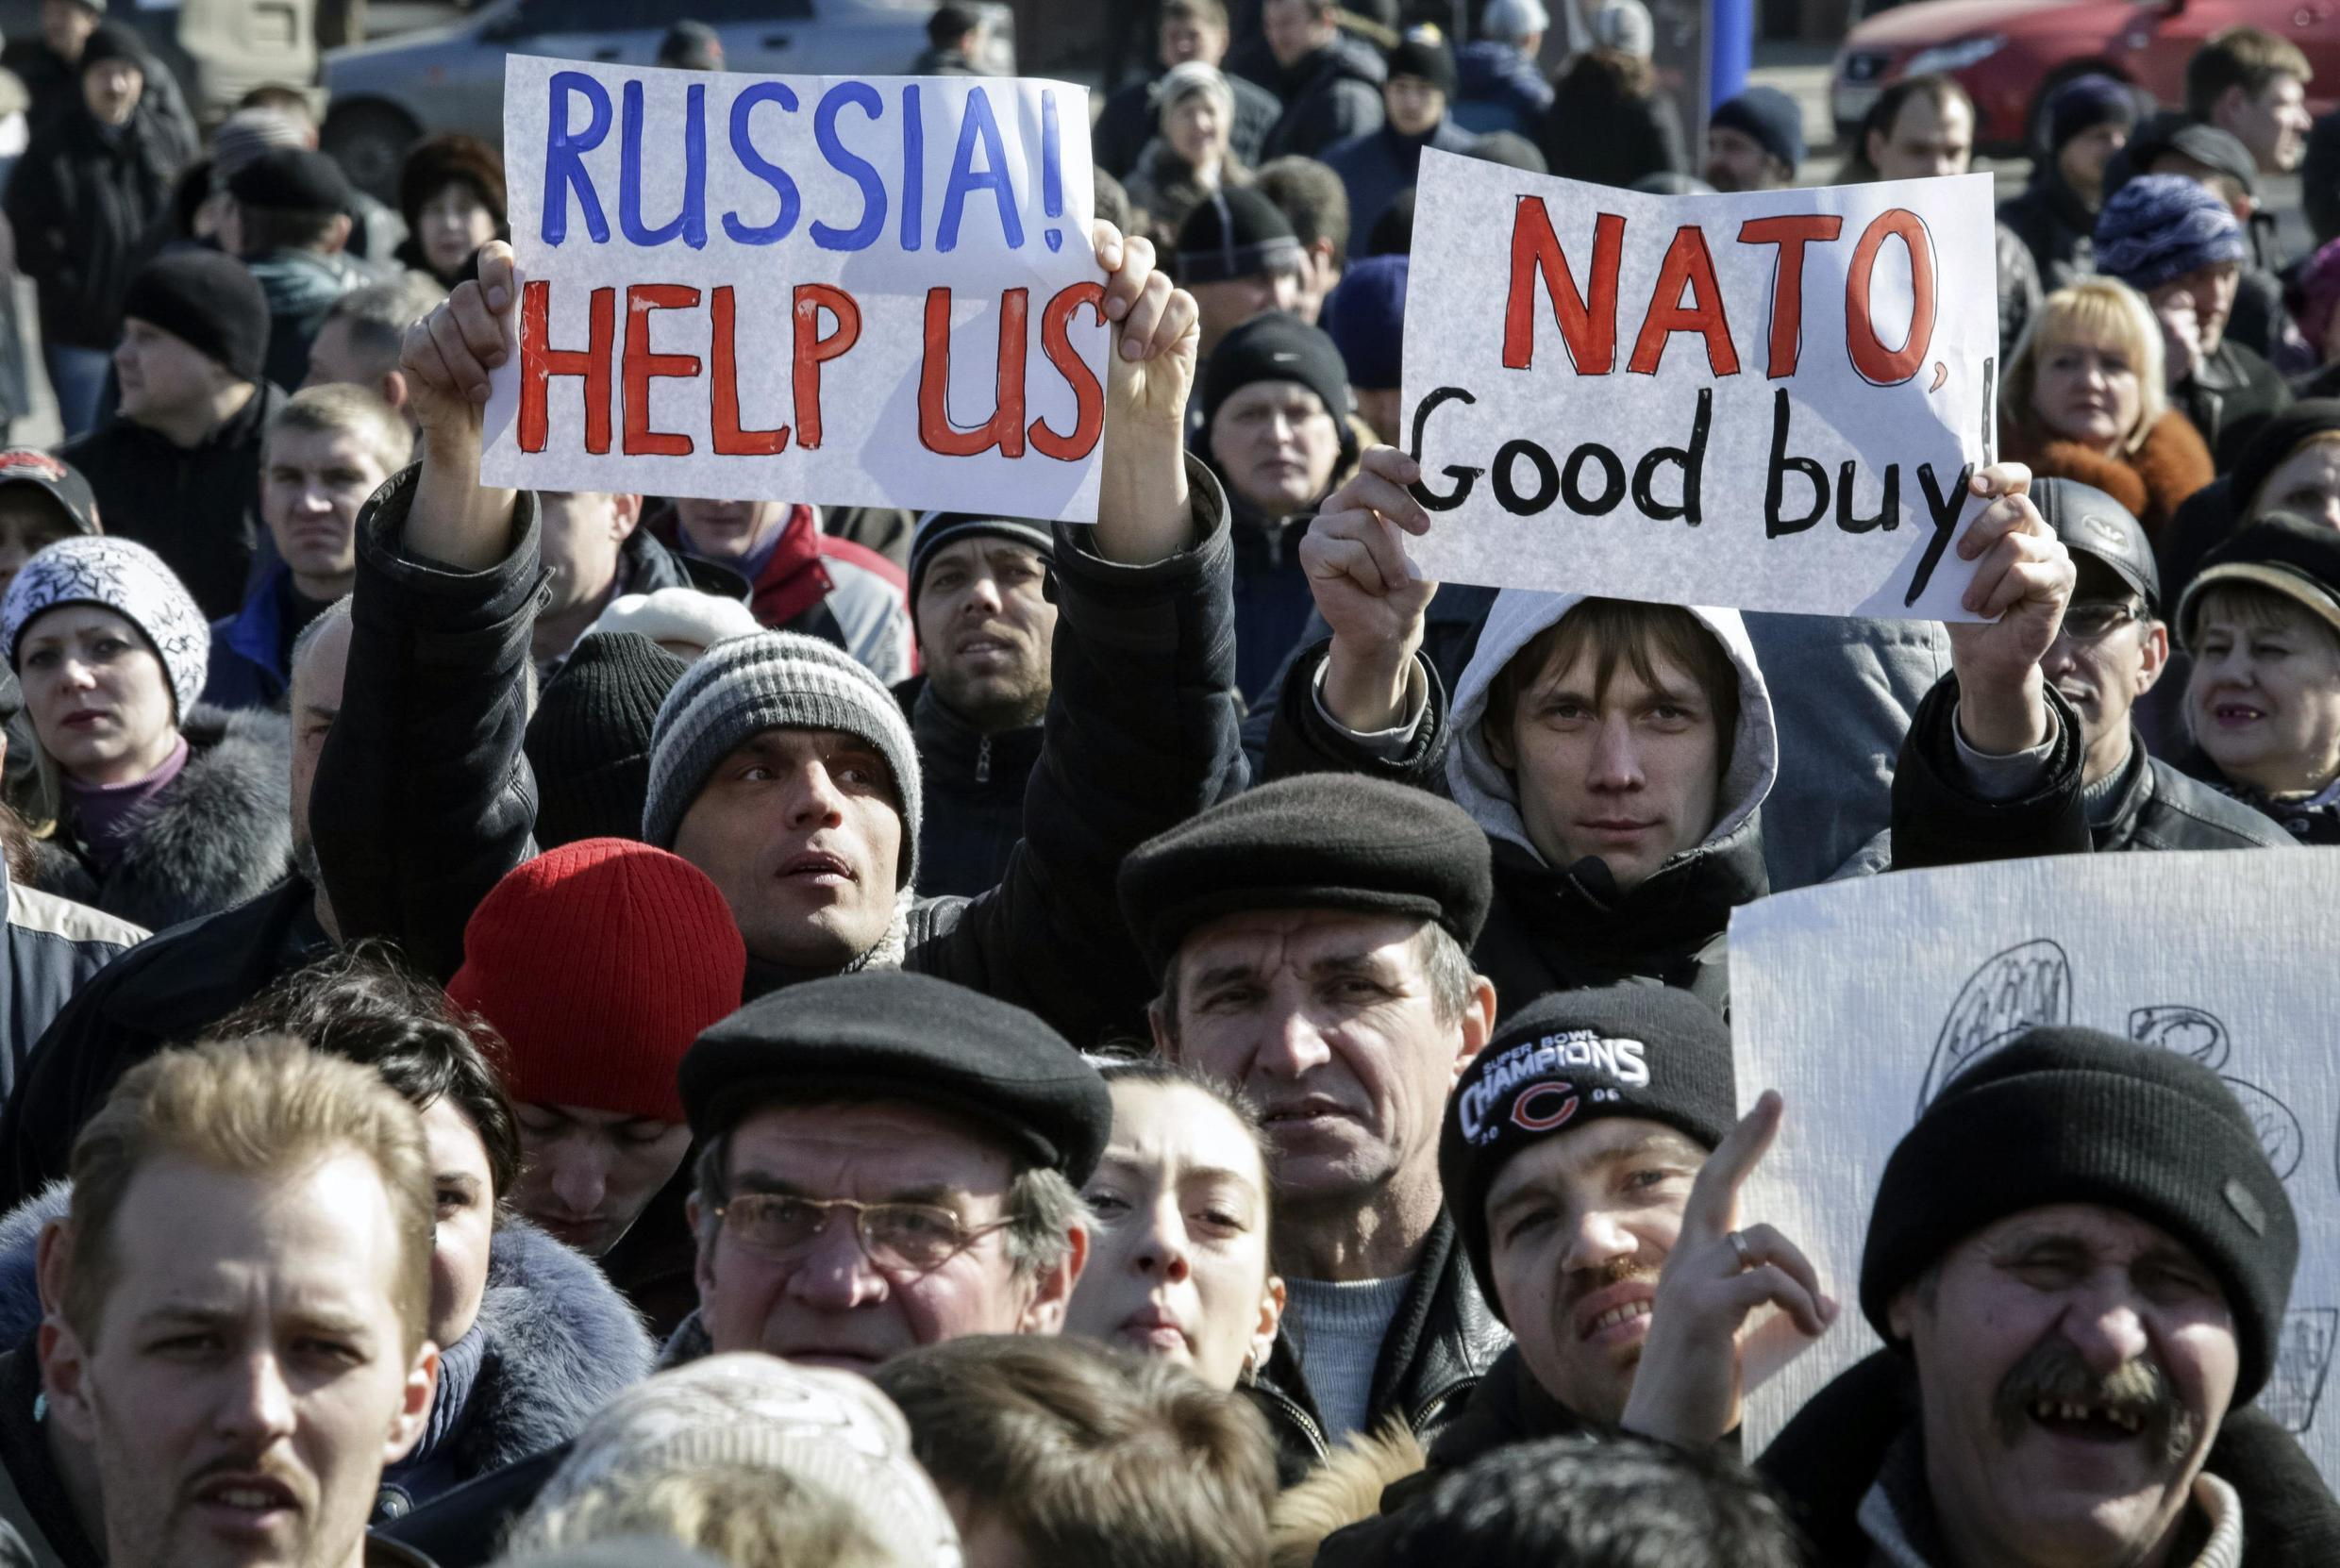 A demonstration in Donestk in favour of Crimea joining Russia